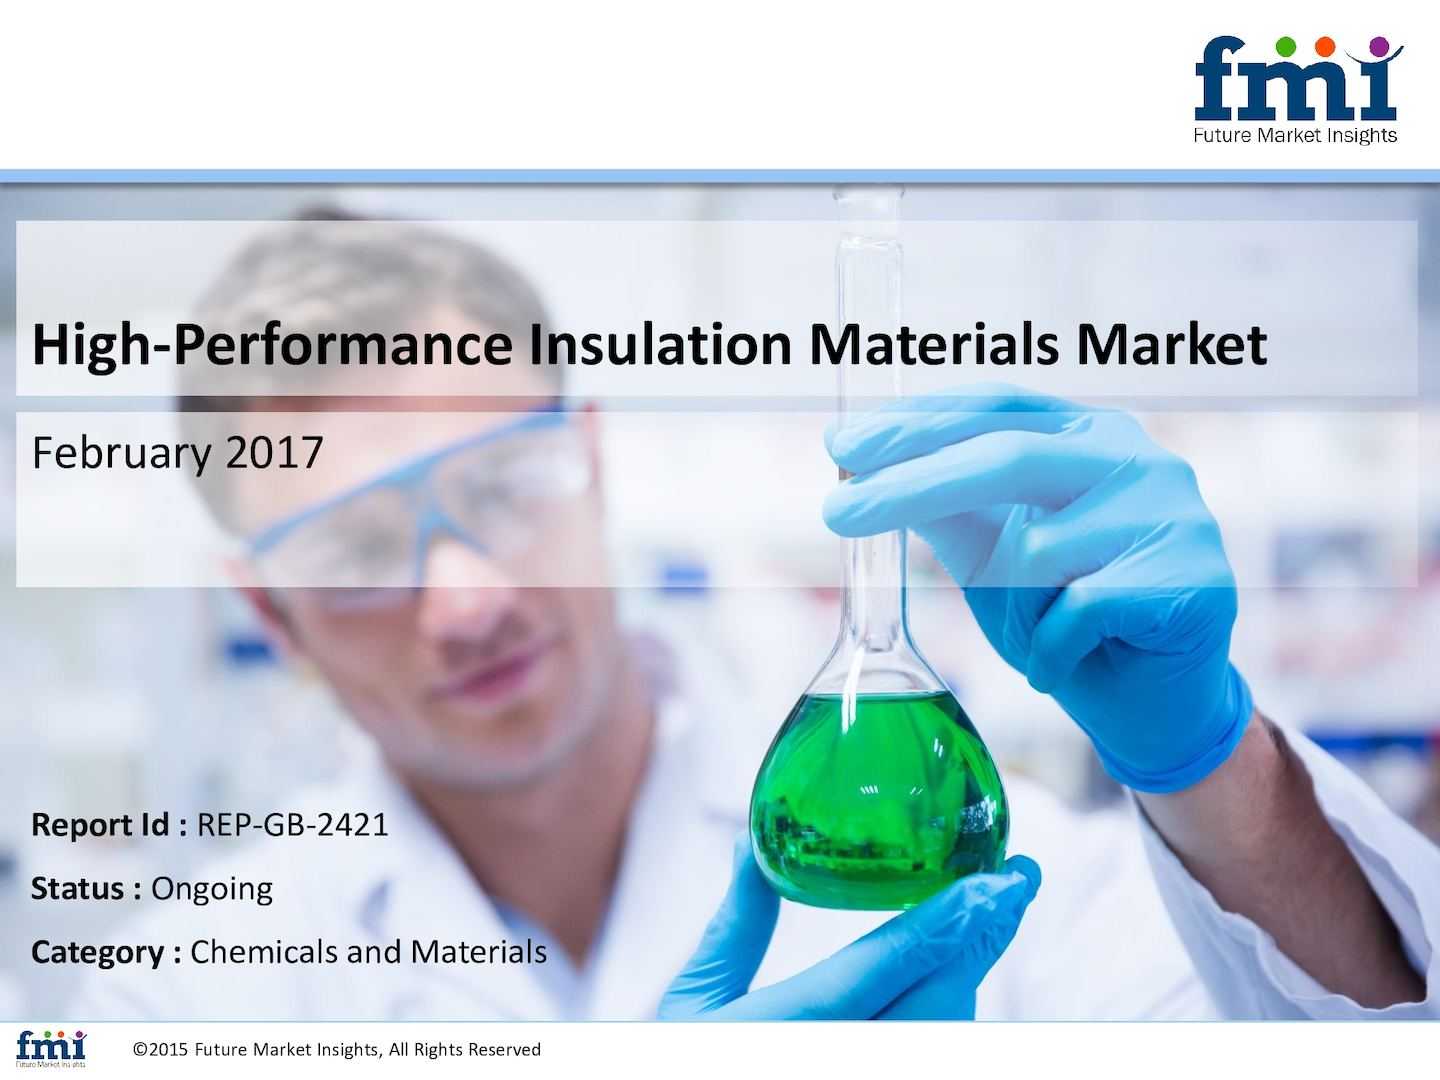 global textile chemicals market 2014 to The global textile chemical market is moderately consolidated with the top four companies accounting for just over 40 percent of the market in 2013 clariant international and hunstman internation llc were key players in the market together accounting for 25 per cent of the market share in 2013.